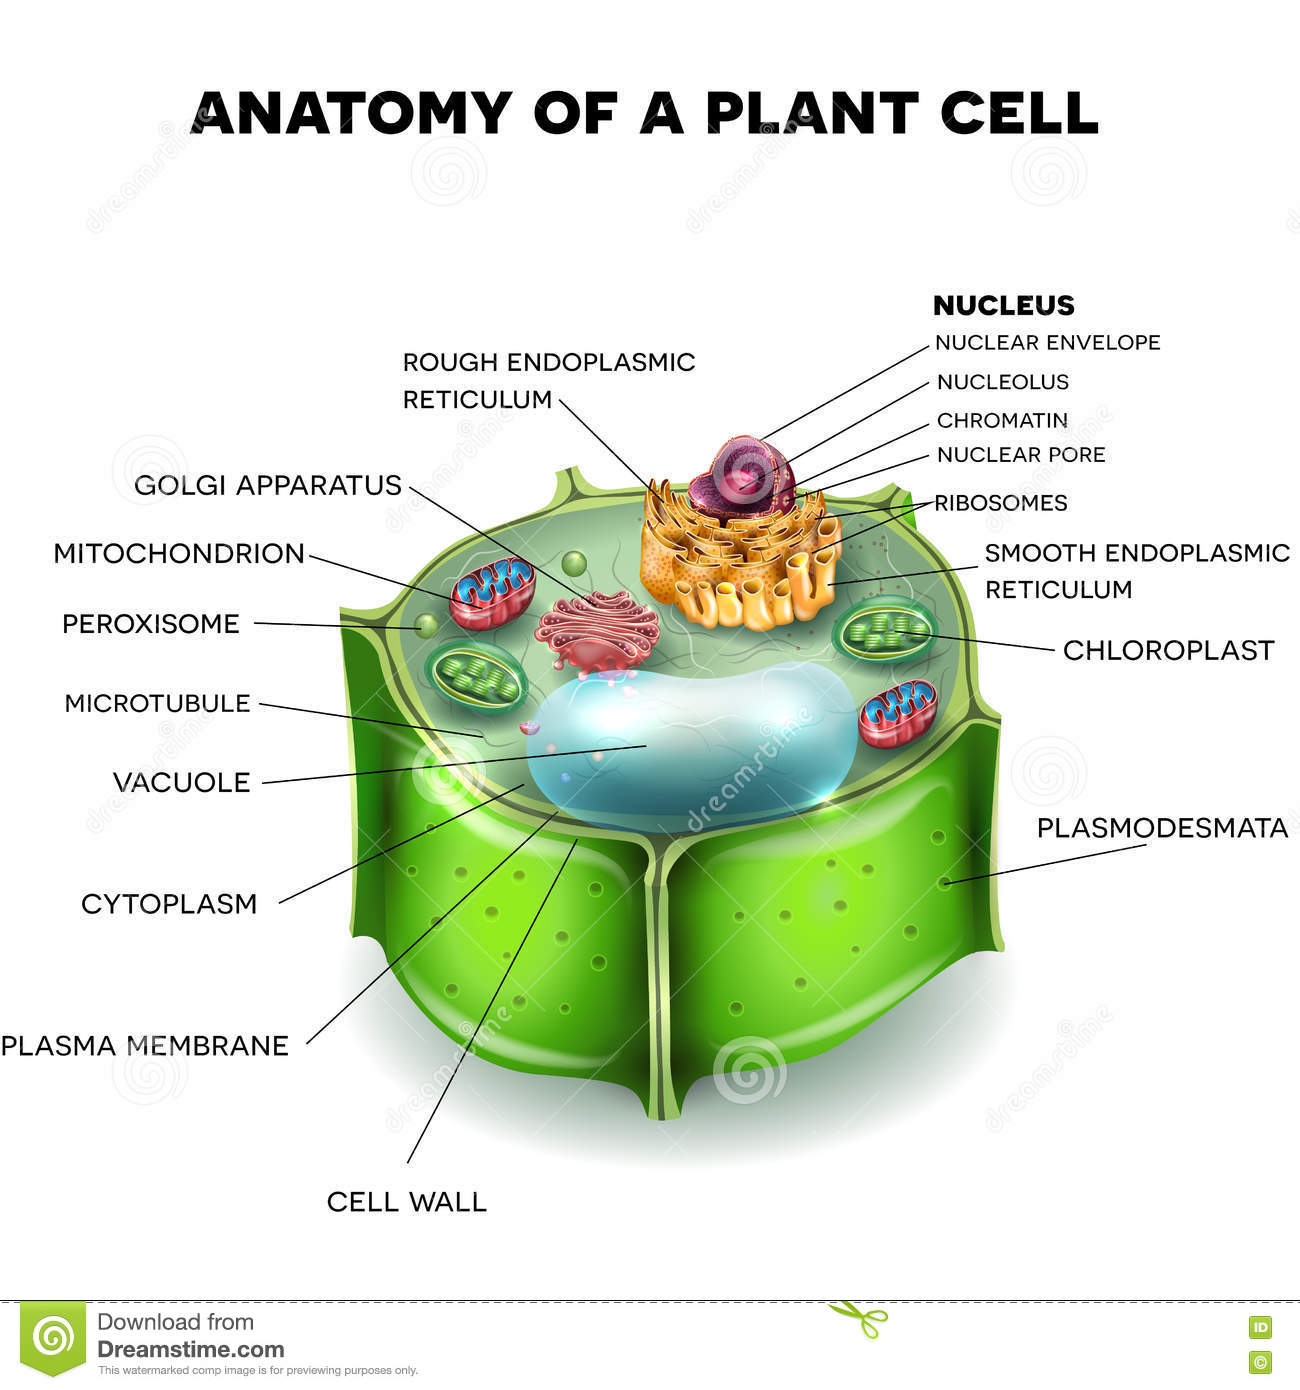 An analysis of the posibilities of plant systems through biotechnology